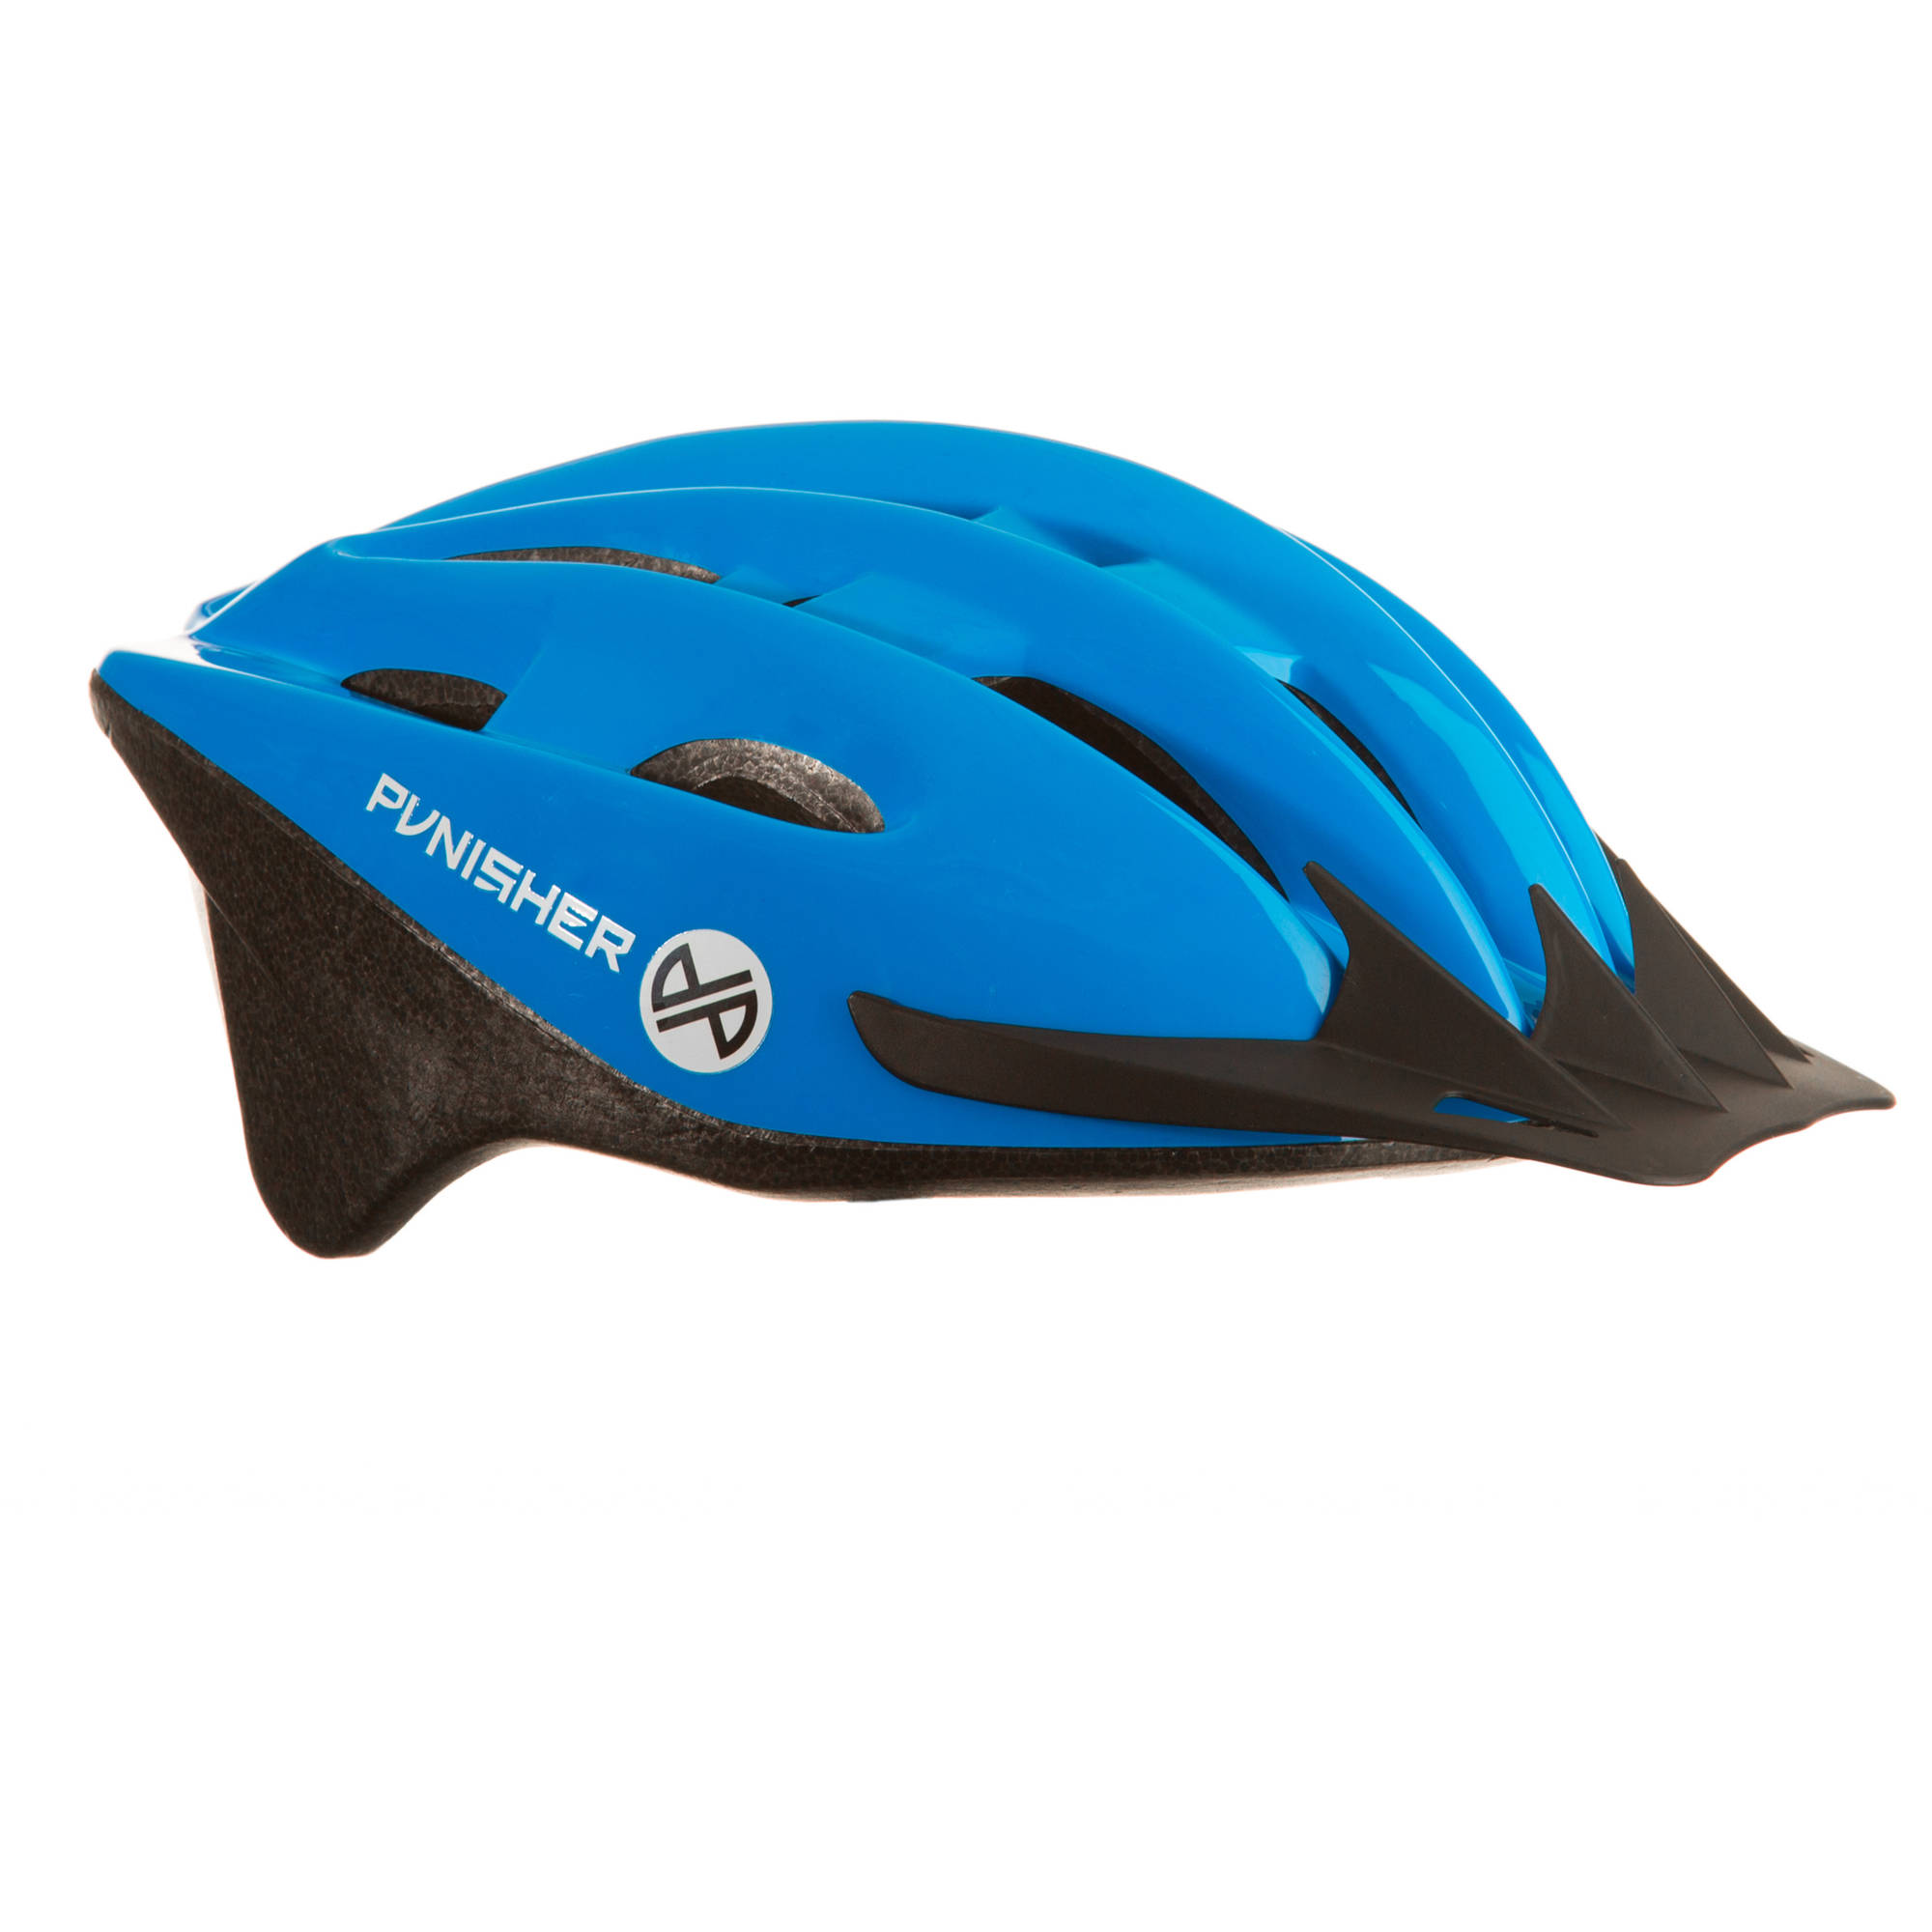 Punisher 18-Vent Adult Cycling Helmet with Imitation In-Mold, Blue, Ages 12+ by Punisher Skateboards